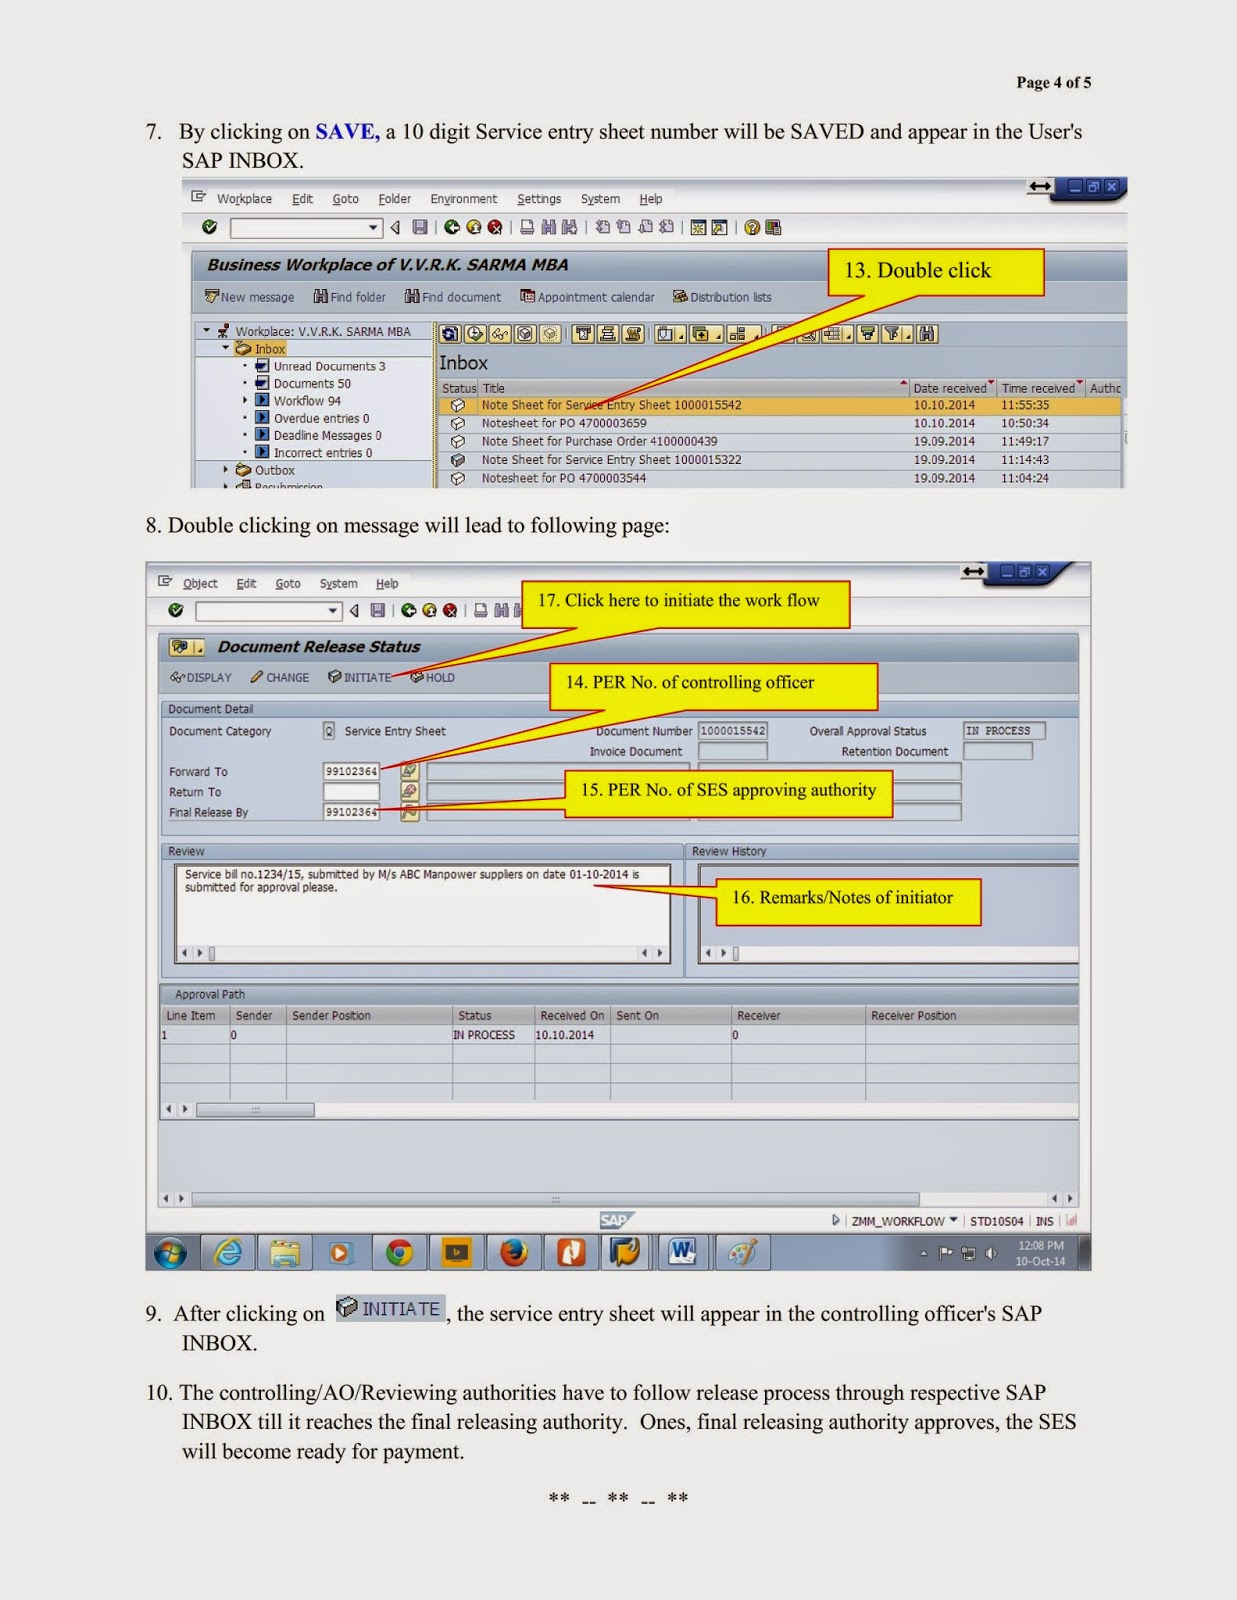 End user manual for Service Entry Sheet (SES) creation